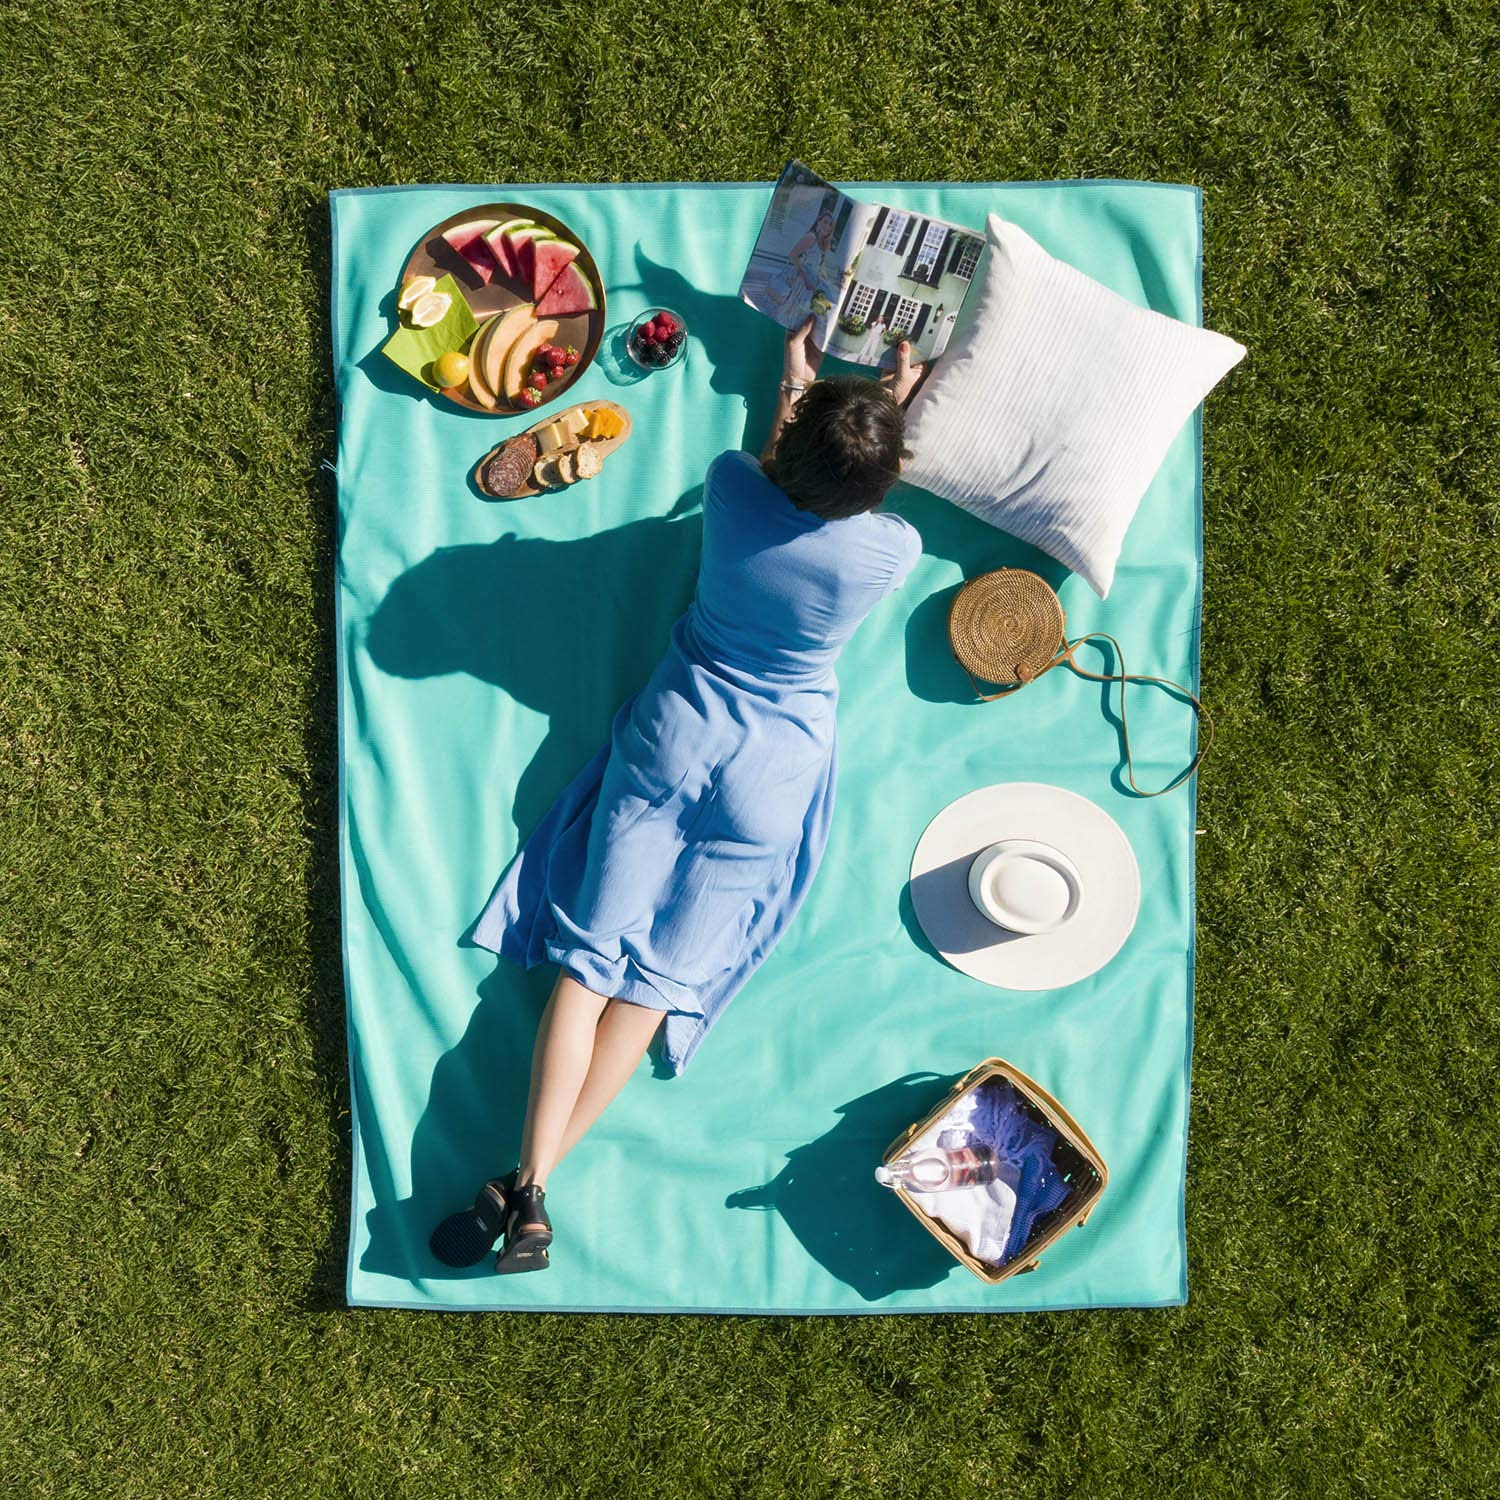 Patented Sand-Free Beach Mat Picnic Blanket Also Great for Families and Equipment Protection CGear Sand-Free Multi Use Outdoor Camping Mat CGEAR Sandlite Exercise Stretching Mat Rollup Compact